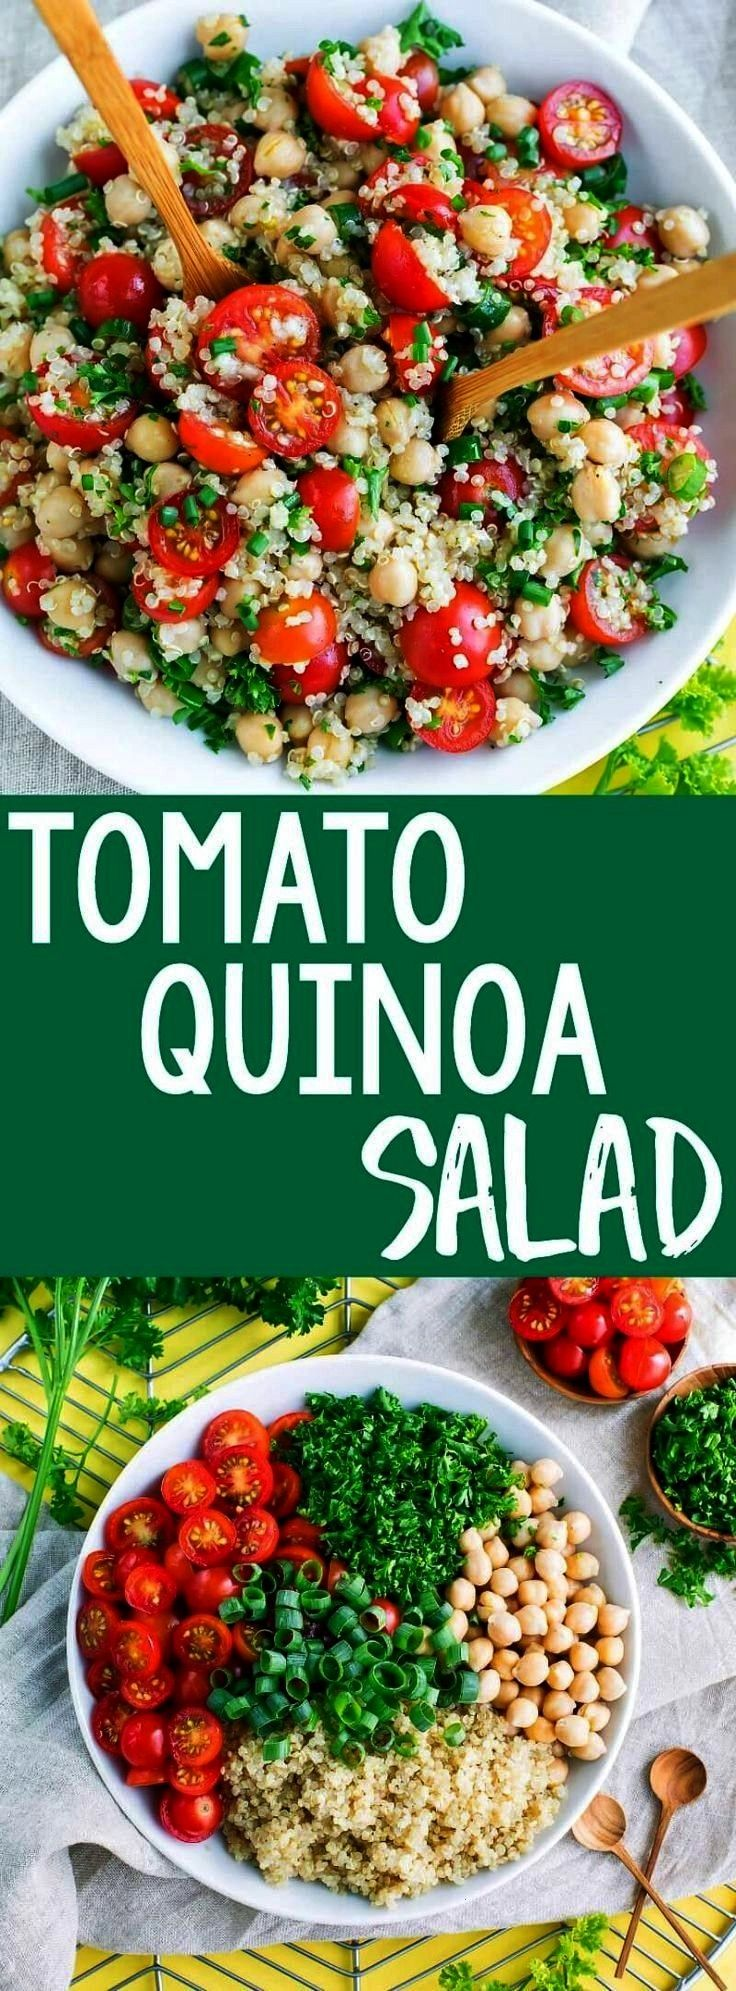 to add another tasty quinoa recipe to our meal prep game! This Tomato Quinoa Salad is fast, flavorf